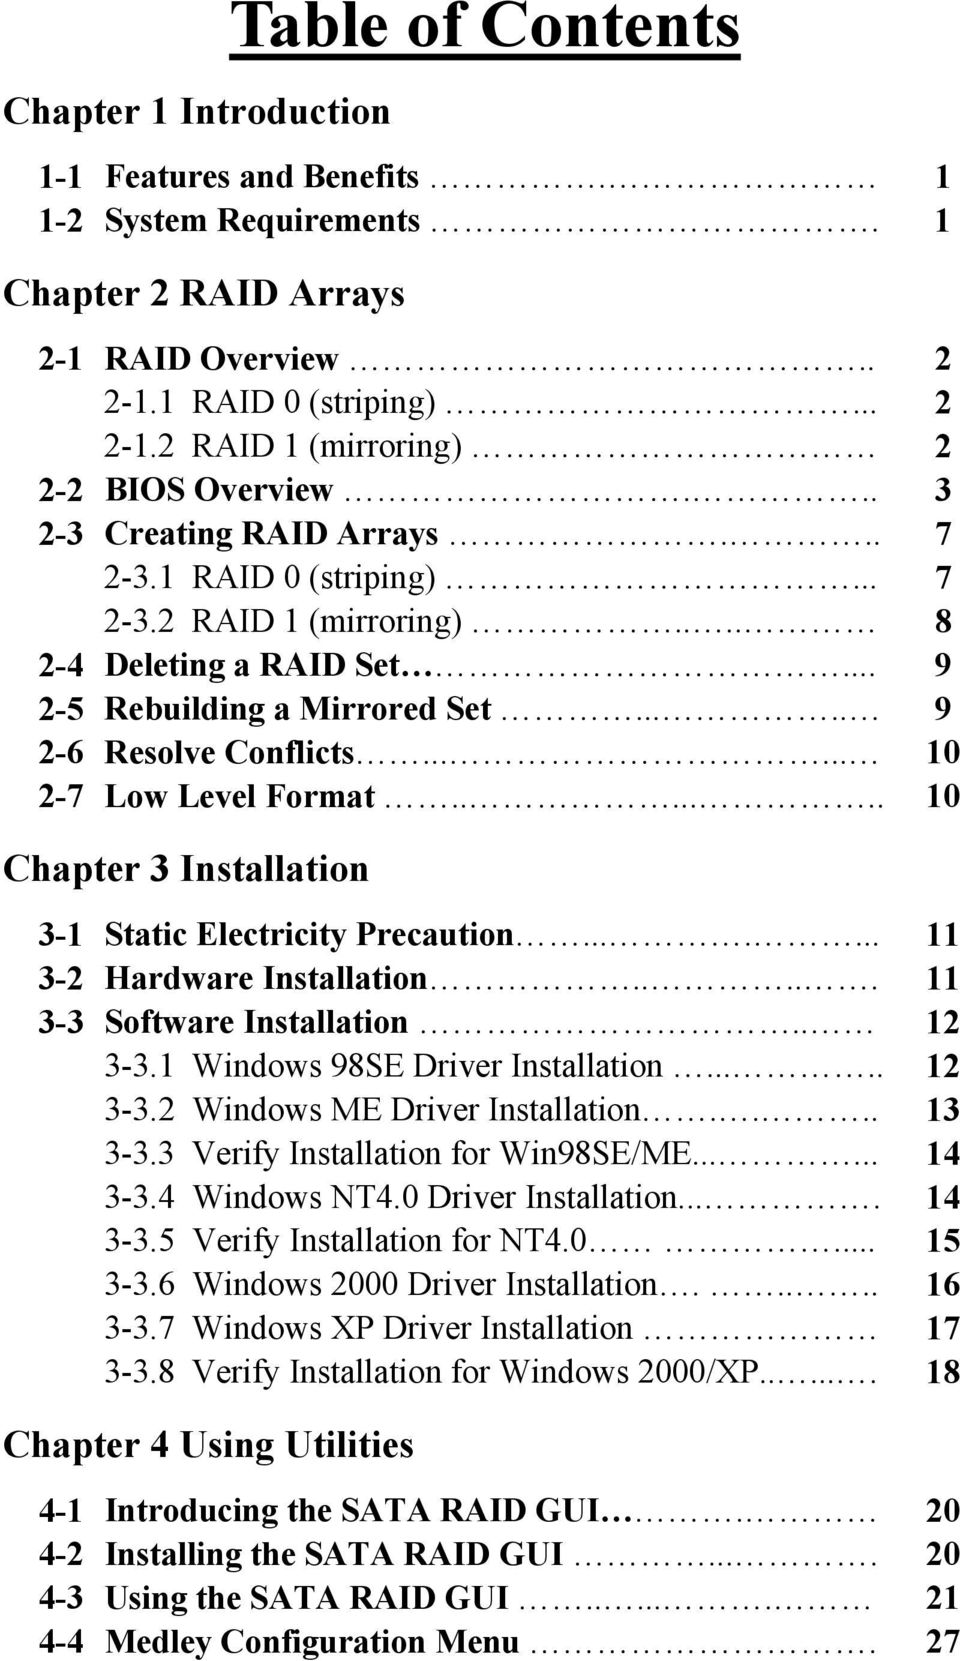 ..... 10 2-7 Low Level Format....... 10 Chapter 3 Installation 3-1 Static Electricity Precaution....... 11 3-2 Hardware Installation..... 11 3-3 Software Installation.. 12 3-3.